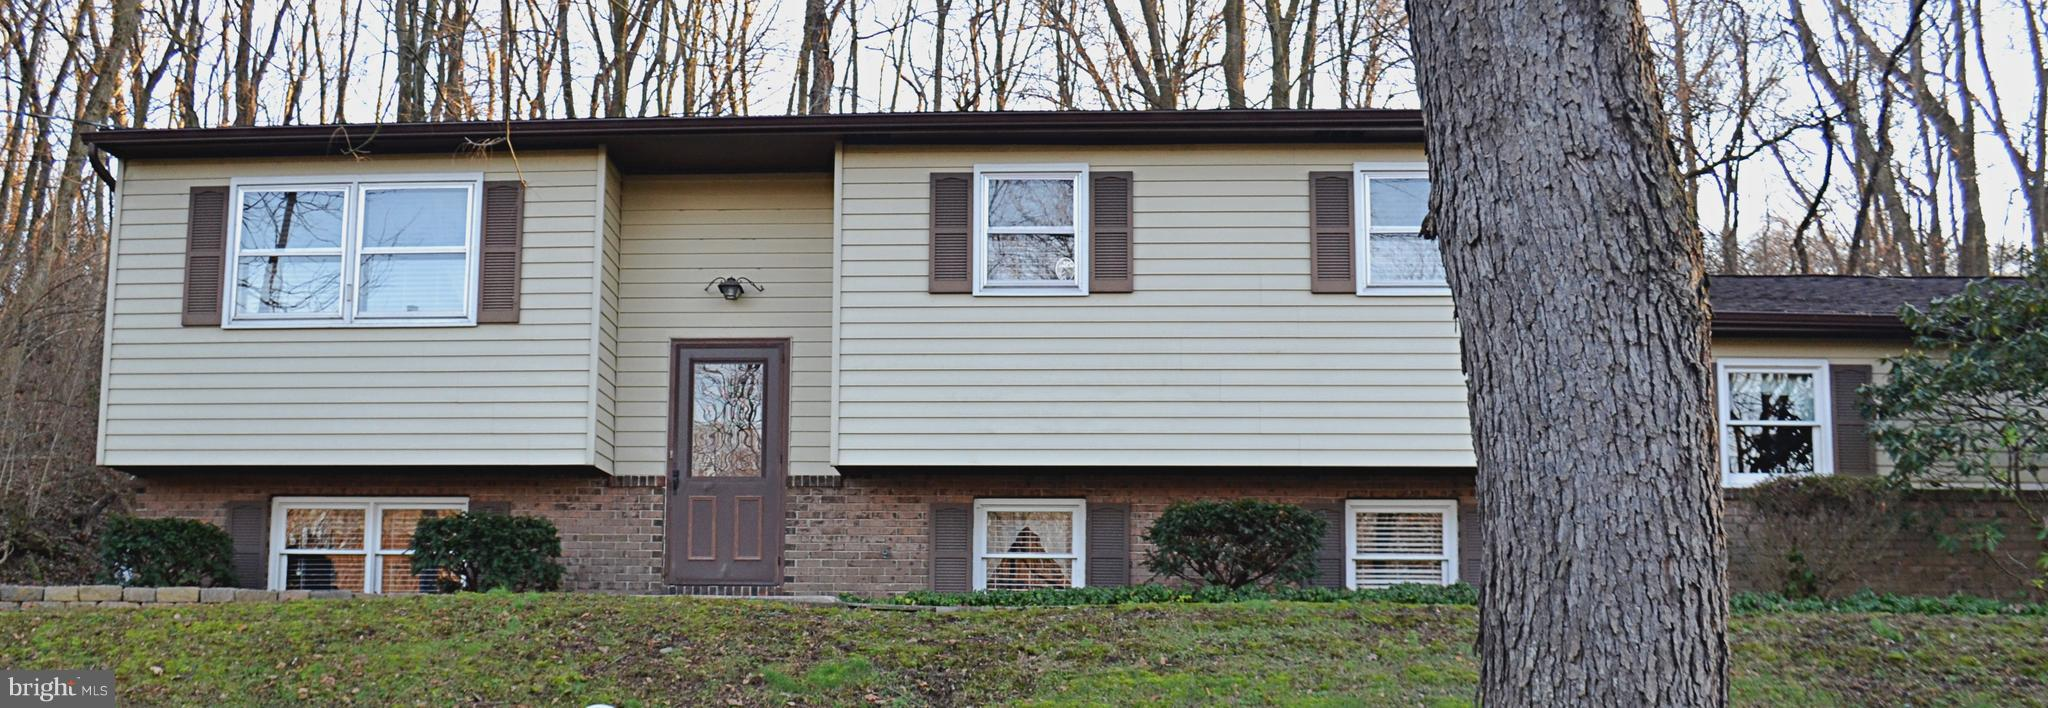 150 W MOUNT AIRY ROAD, STEVENS, PA 17578